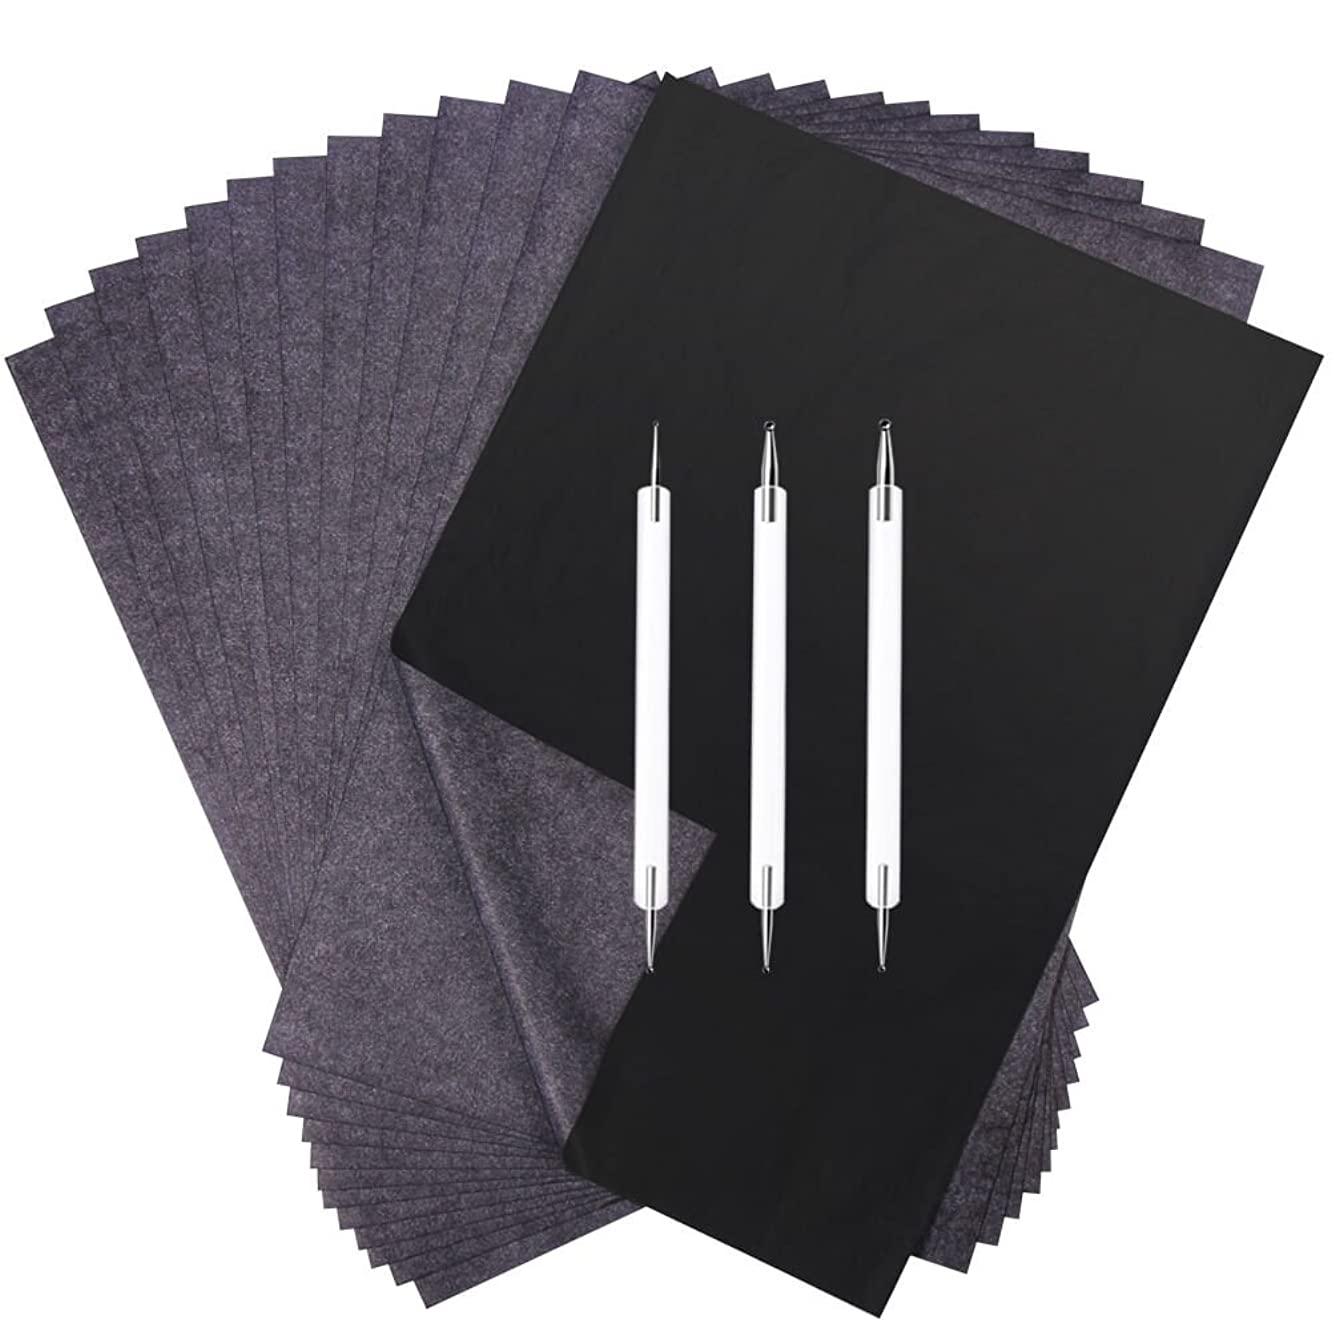 Selizo 100 Sheets Carbon Transfer Paper with Embossing Stylus Set for Wood Tacing Copy